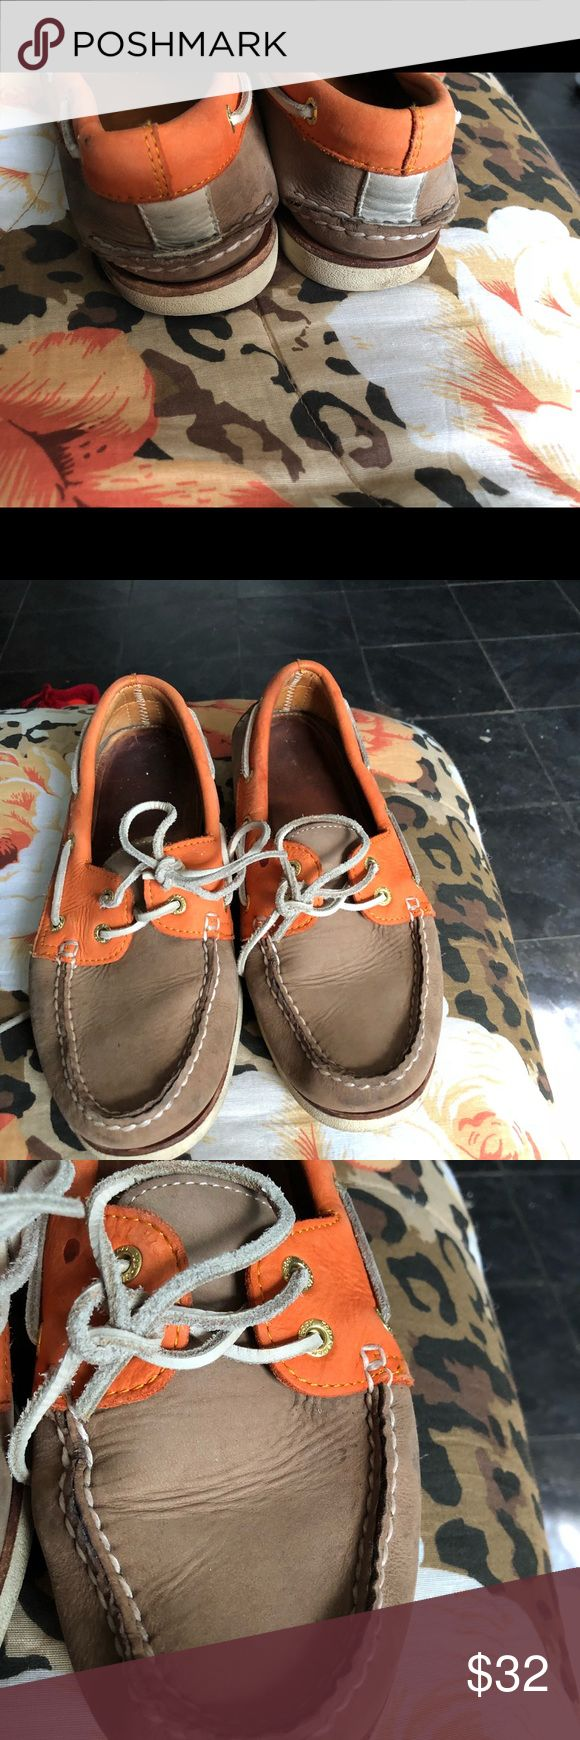 Sperry boat dock shoes Boat dock shoes size 9 paid 150.00 new.  These have normal wear and are used. Sperry Shoes Boat Shoes